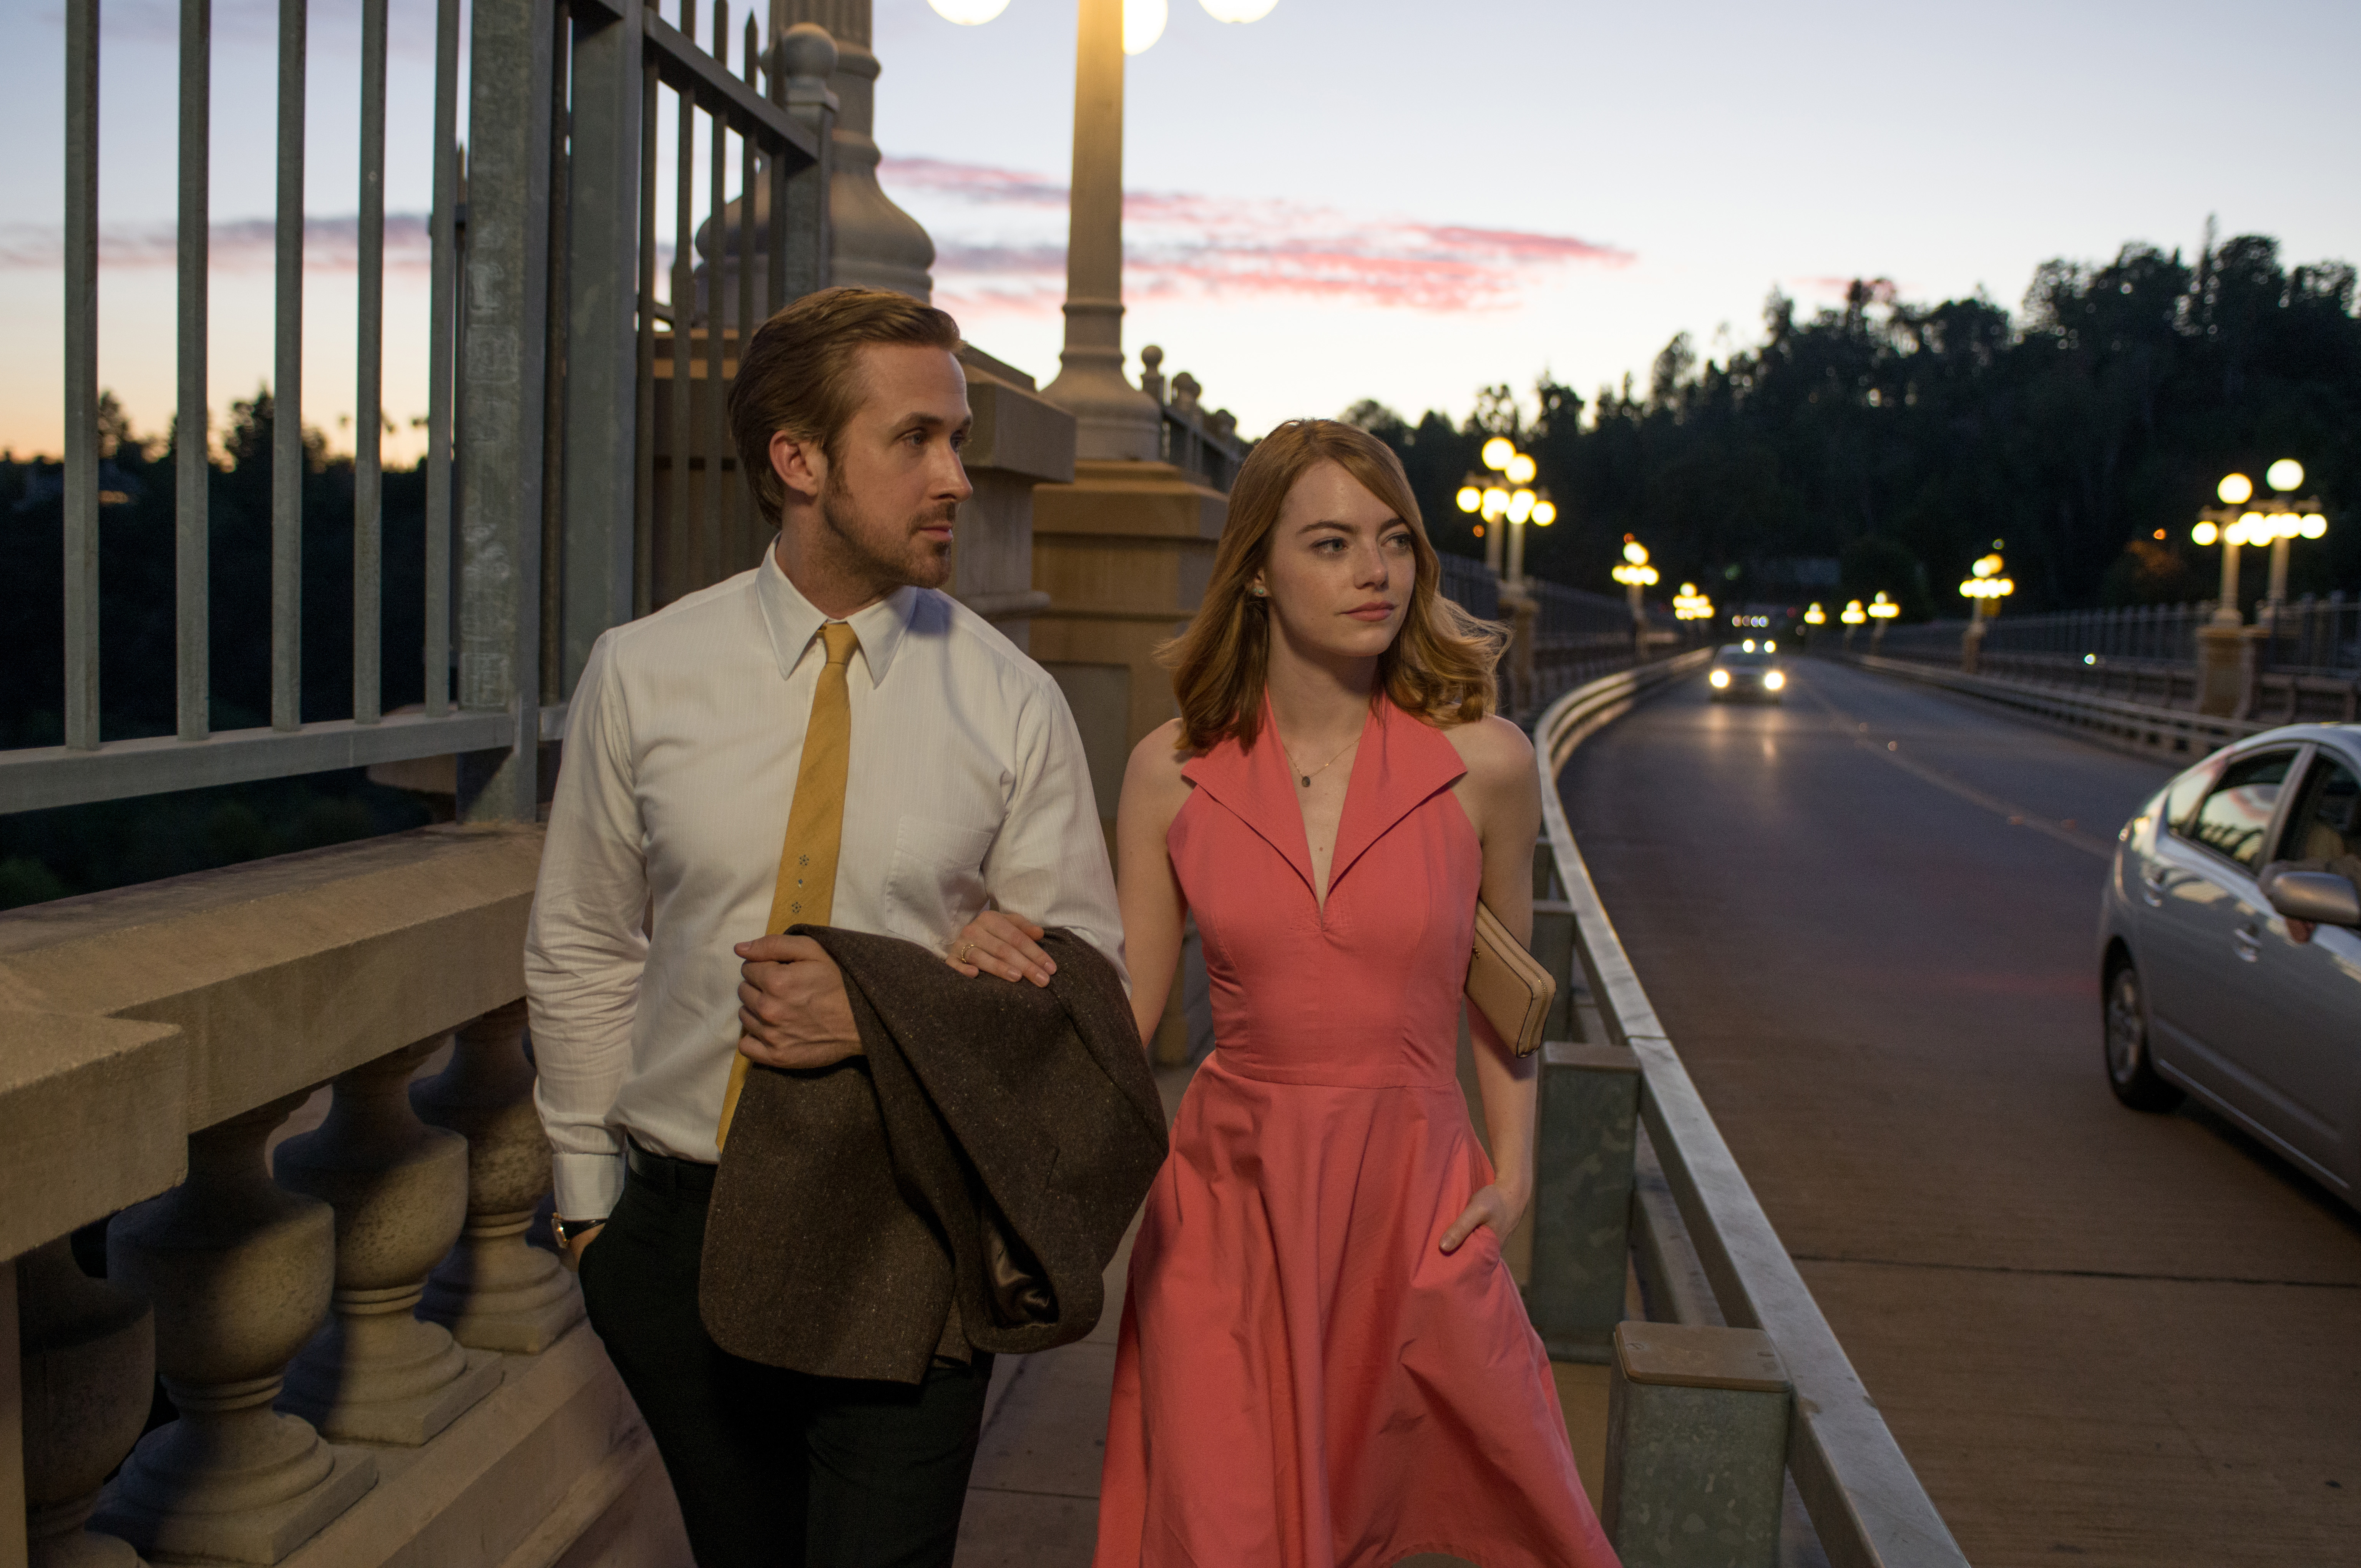 A man and a woman walk down a sidewalk which is adjacent to a street. There are lamp posts with lights on lining the street. The woman is in a red dress. The man is in a suit carrying his jacket on one arm.